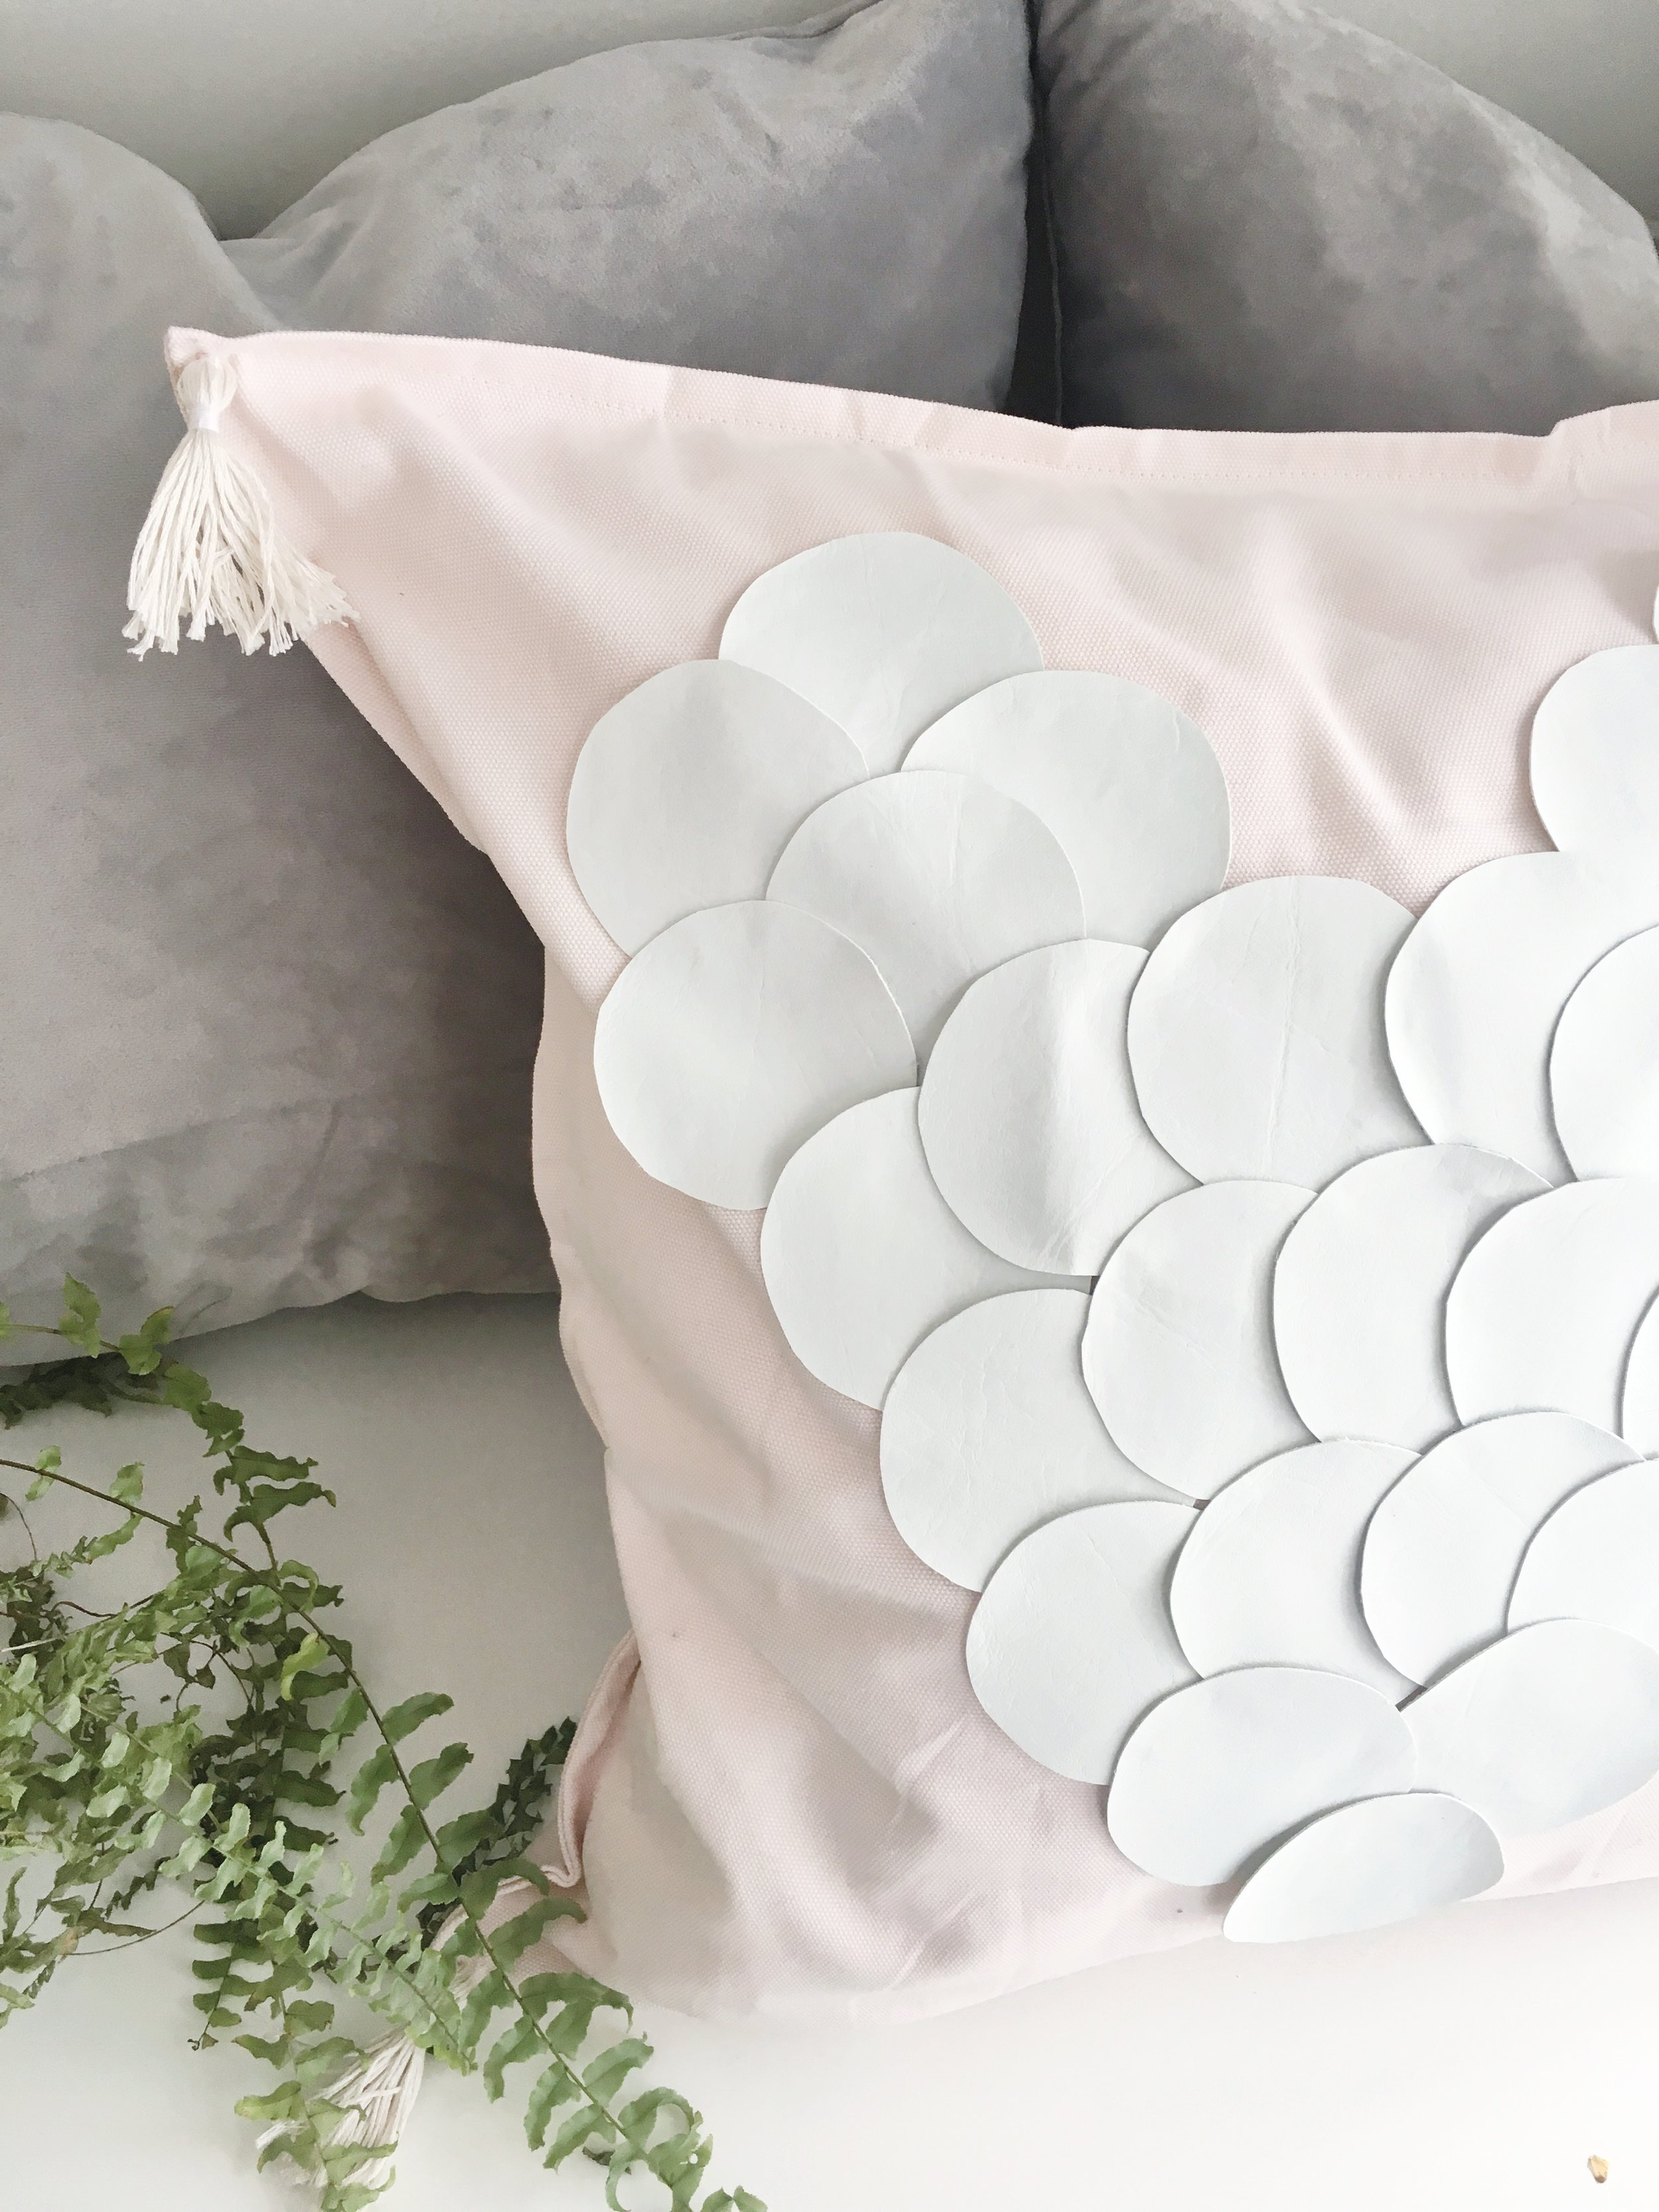 STEP SEVEN - Stuff the cover with the pillow insert and get ready to receive multiple compliments from your guests!